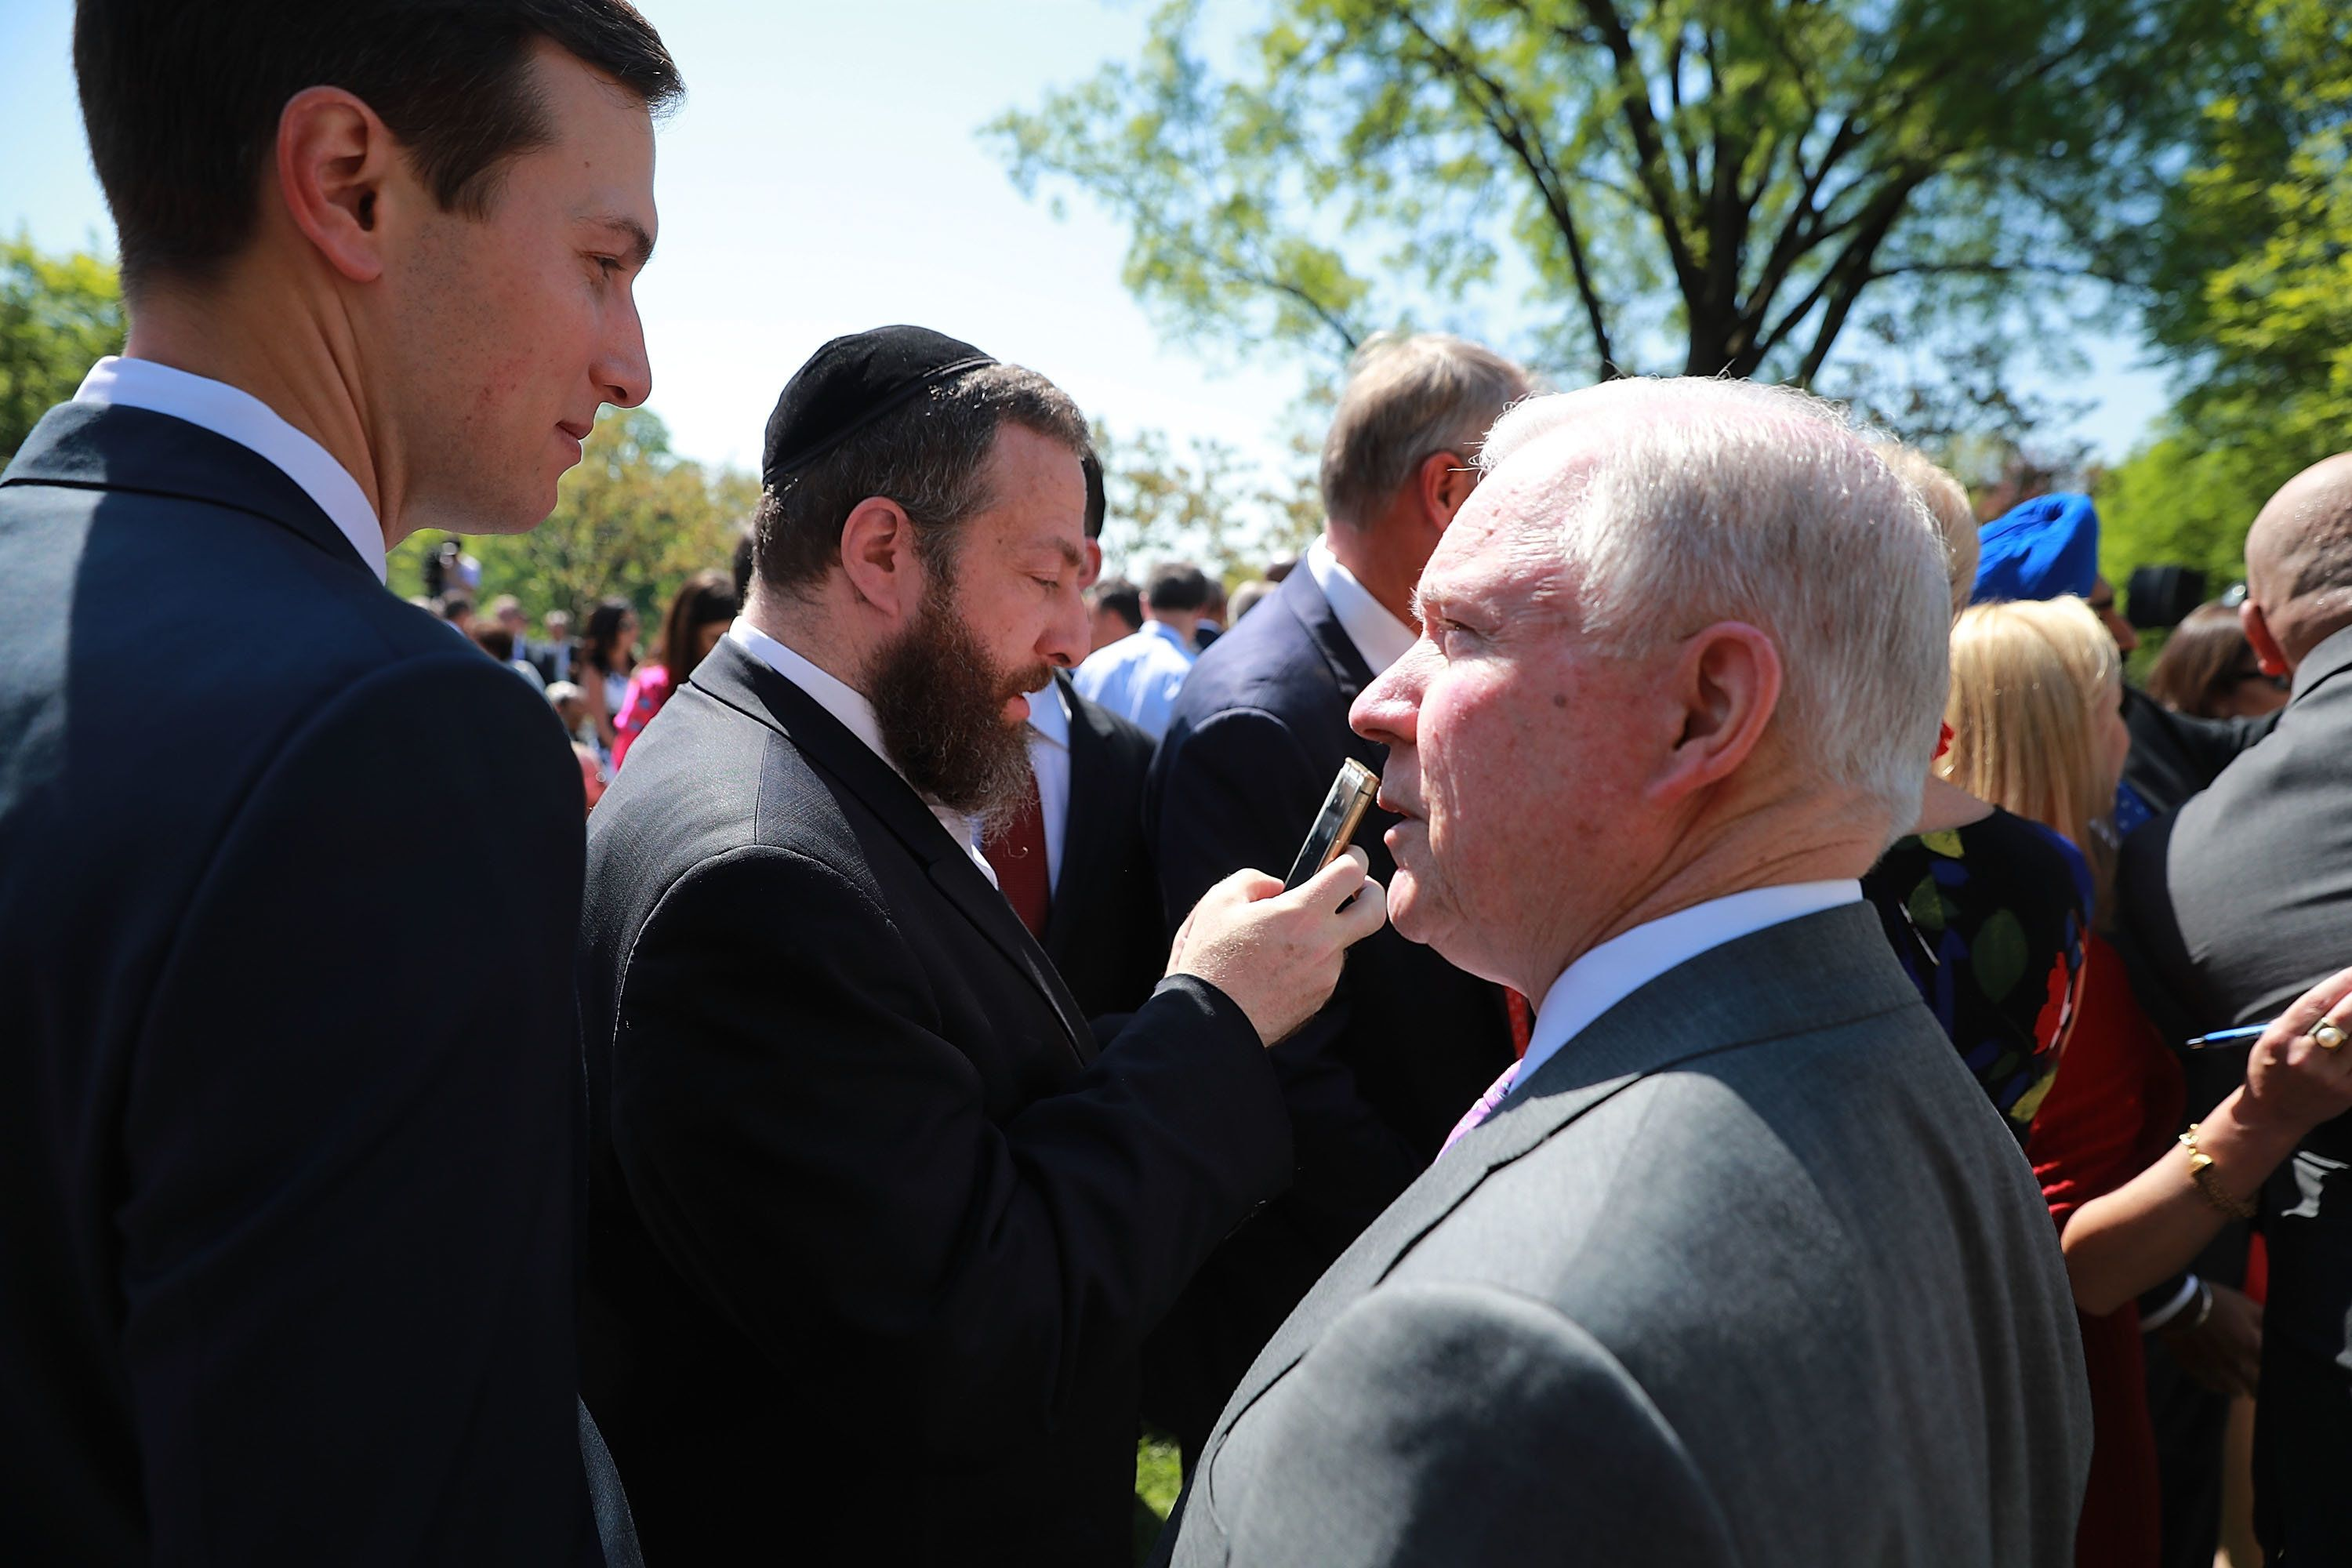 WASHINGTON, DC - MAY 03:  U.S. Attorney General Jeff Sessions (R) and Senior Advisor to the President and Donald Trump's son-in-law Jared Kushner (L) talk before an event to mark the National Day of Prayer in the Rose Garden at the White House May 3, 2018 in Washington, DC. The White House invited leaders from various faiths and religions to participate in the day of prayer, which was designated in 1952 by the United States Congress to ask people 'to turn to God in prayer and meditation.'  (Photo by Chip Somodevilla/Getty Images)